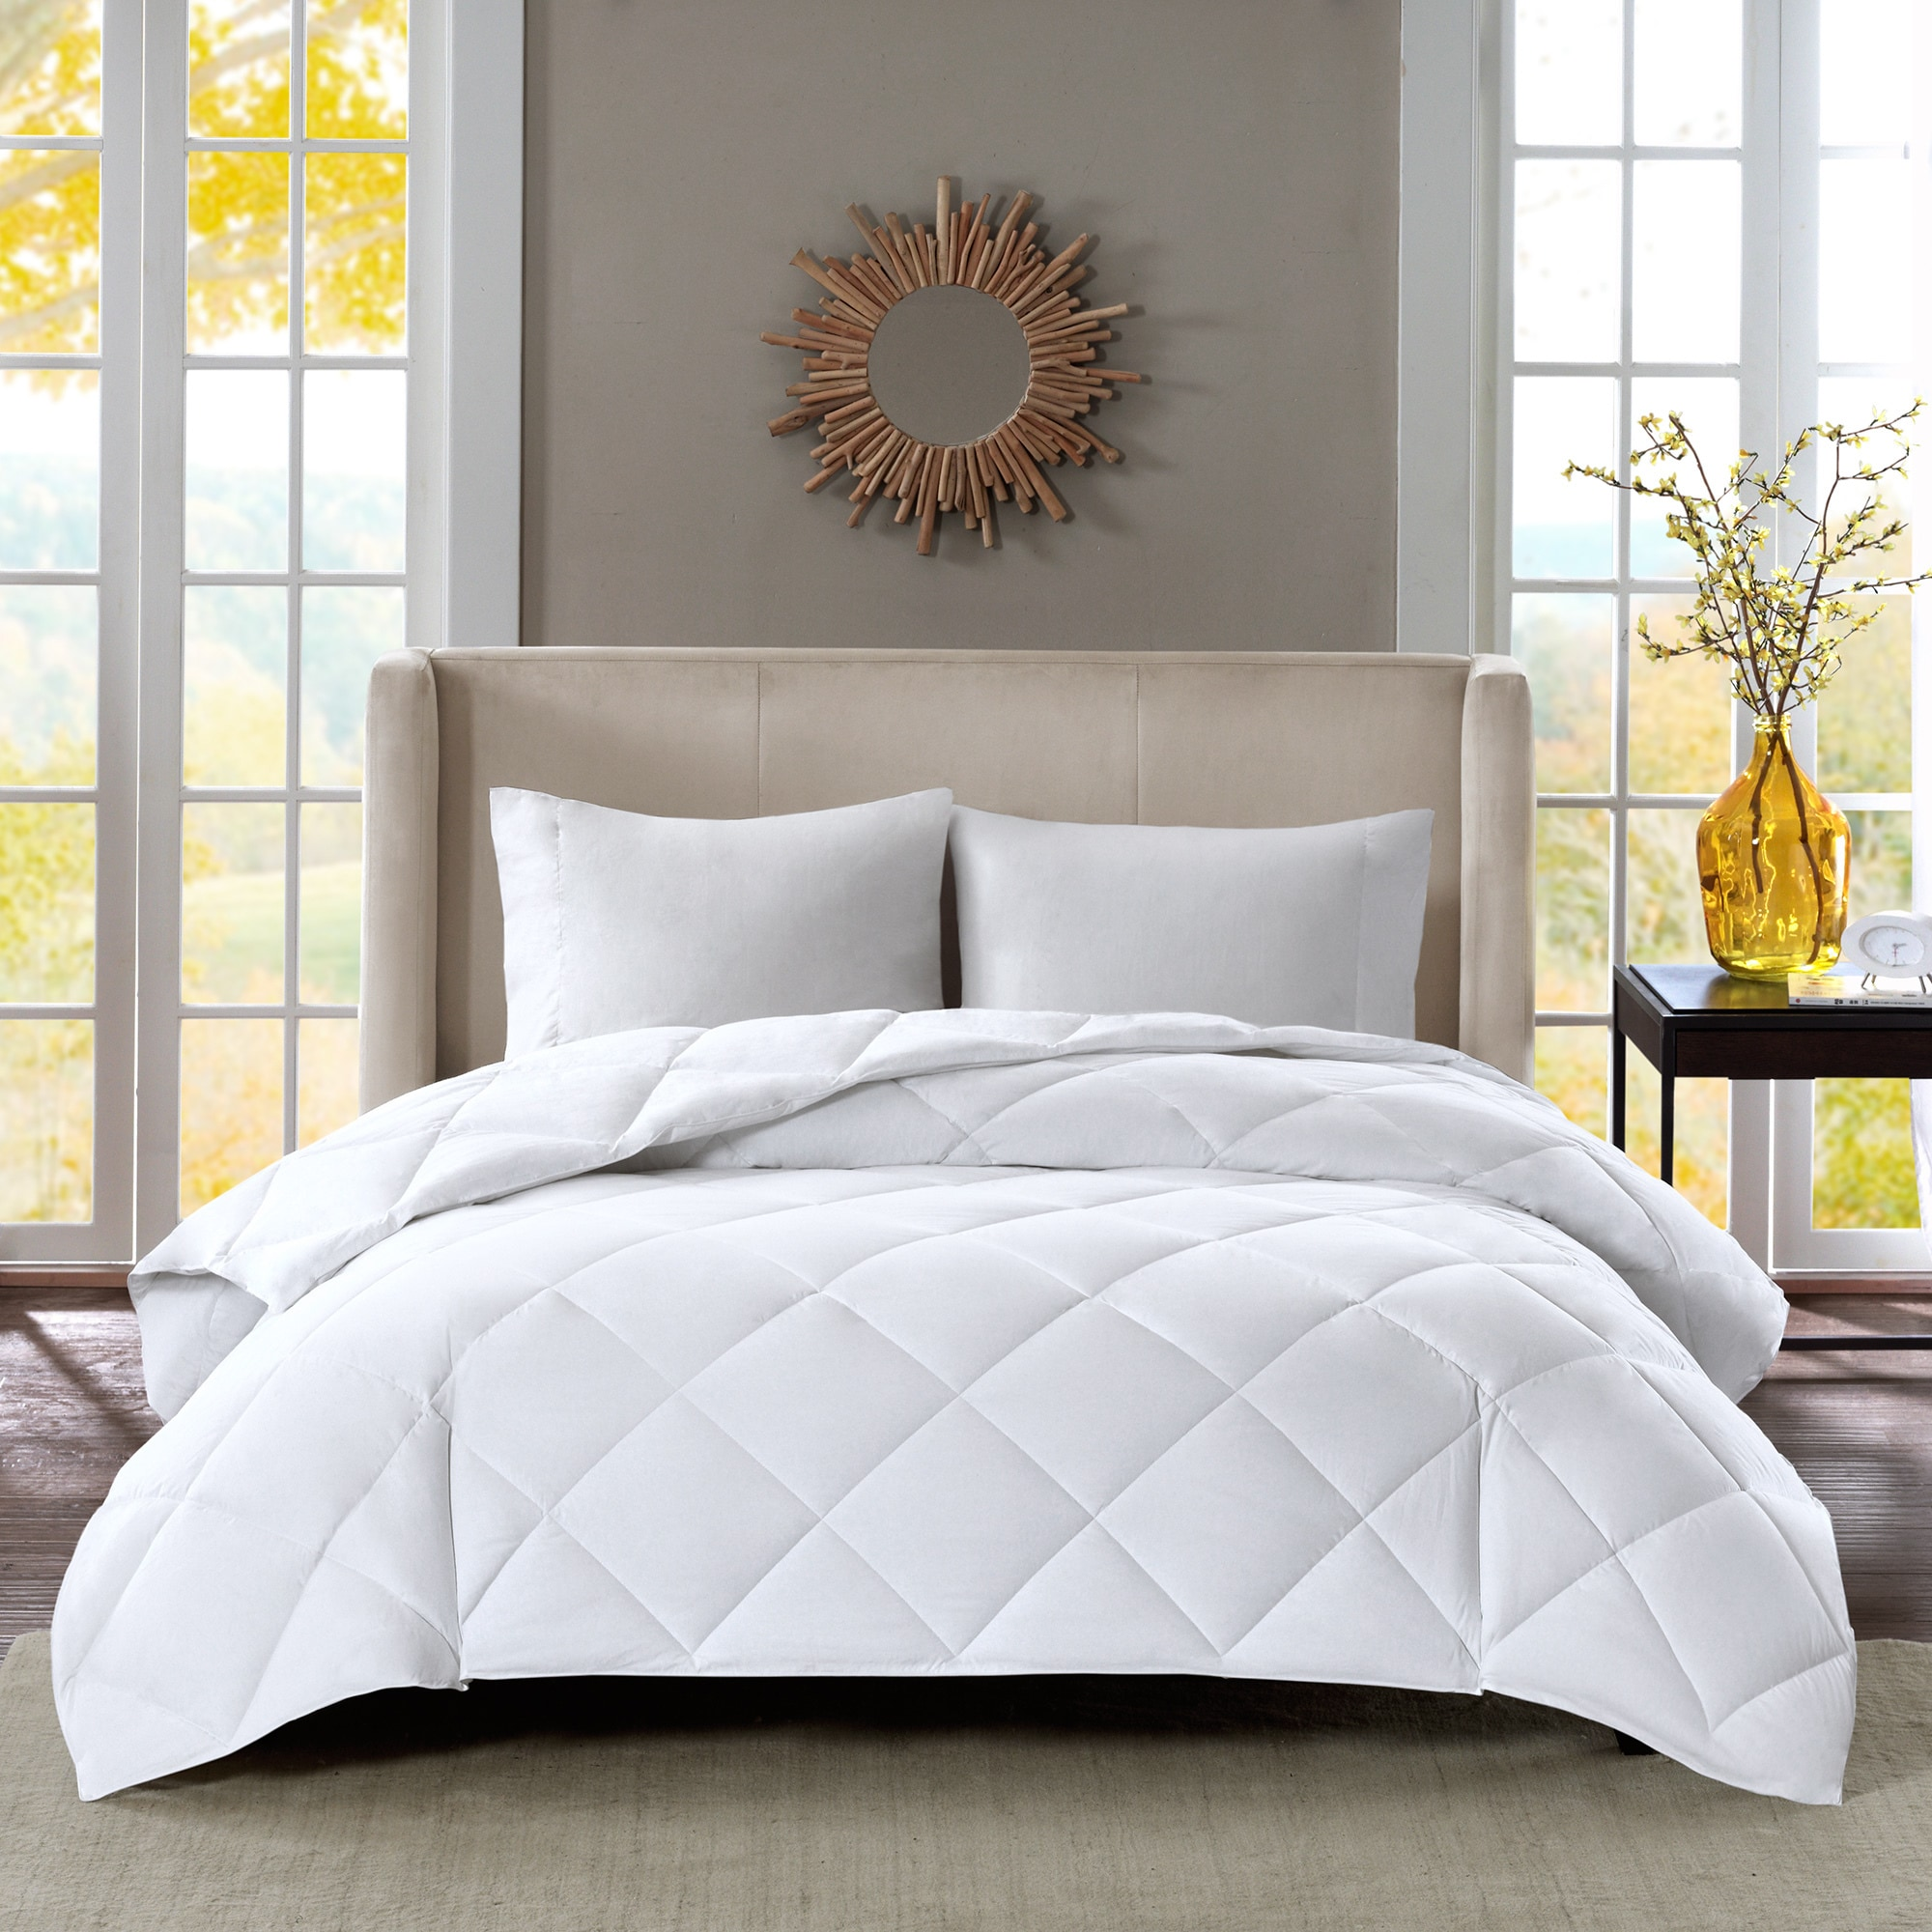 count sleep free sateen down treatment scotchgard shipping level white true product number today with by bedding north bath thread cotton overstock philosophy comforter